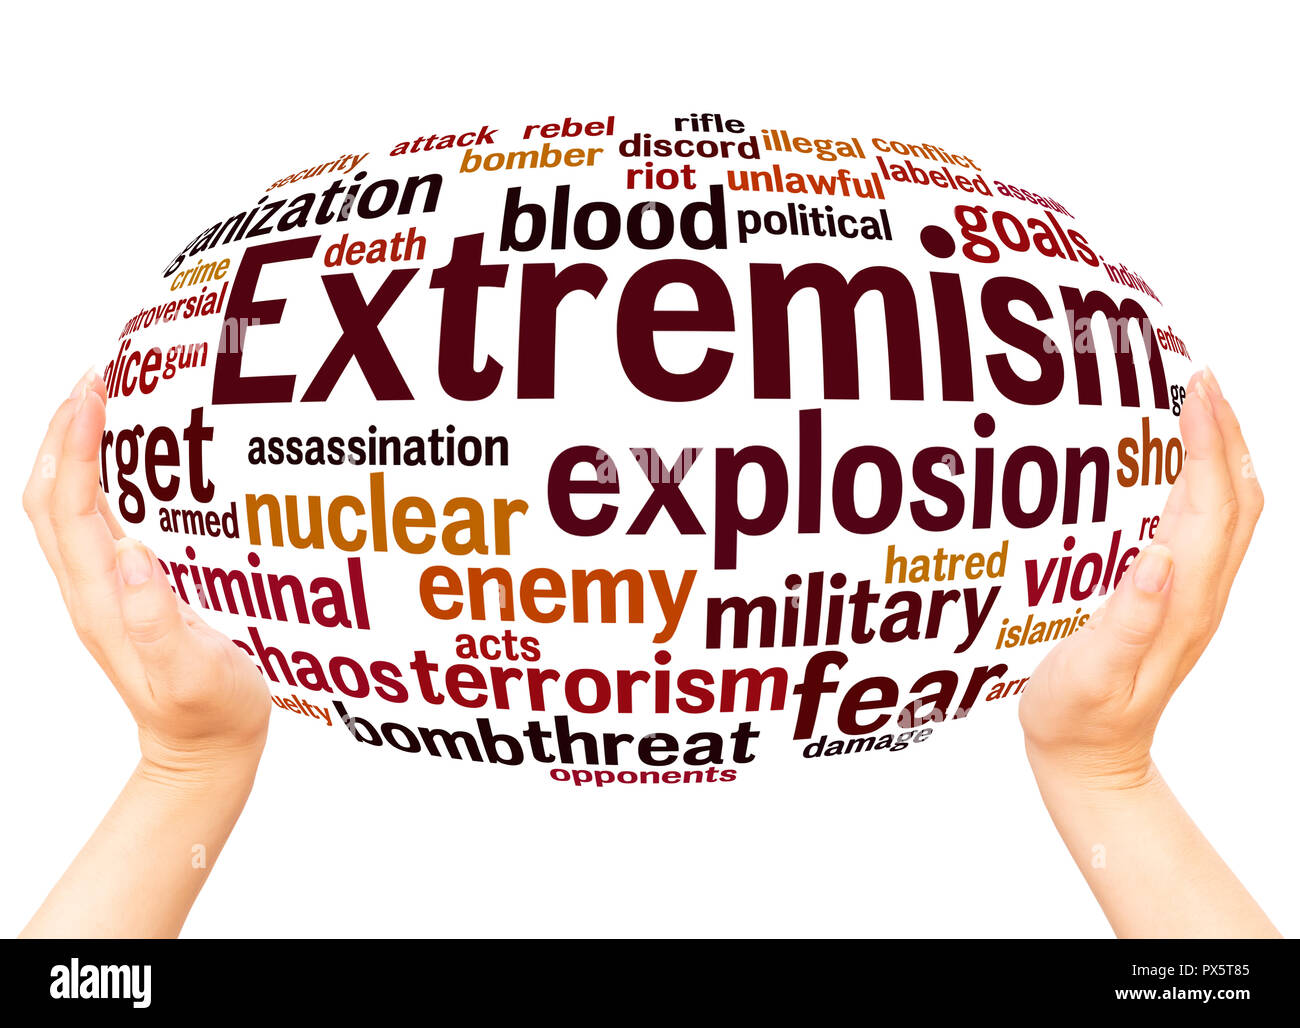 Extremism word cloud hand sphere concept on white background. - Stock Image